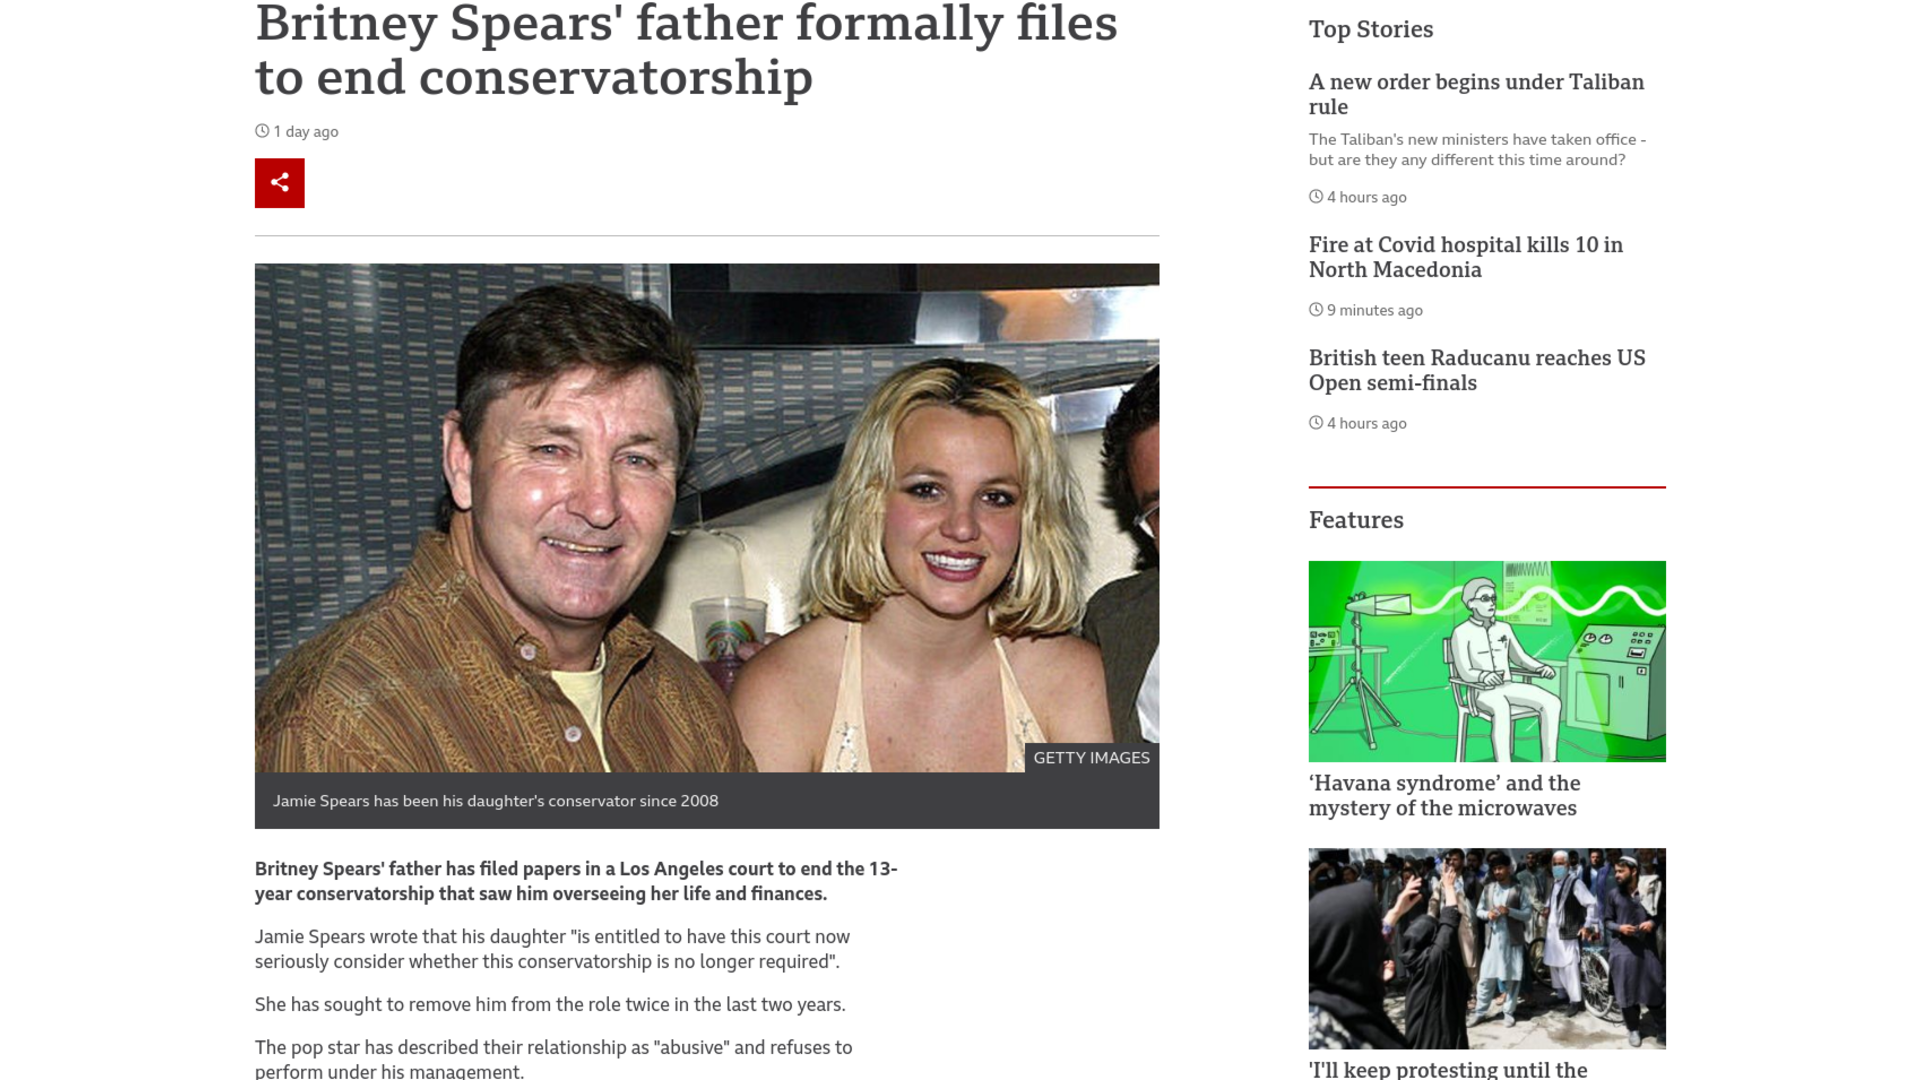 Fairness Rocks News Britney Spears' father formally files to end conservatorship